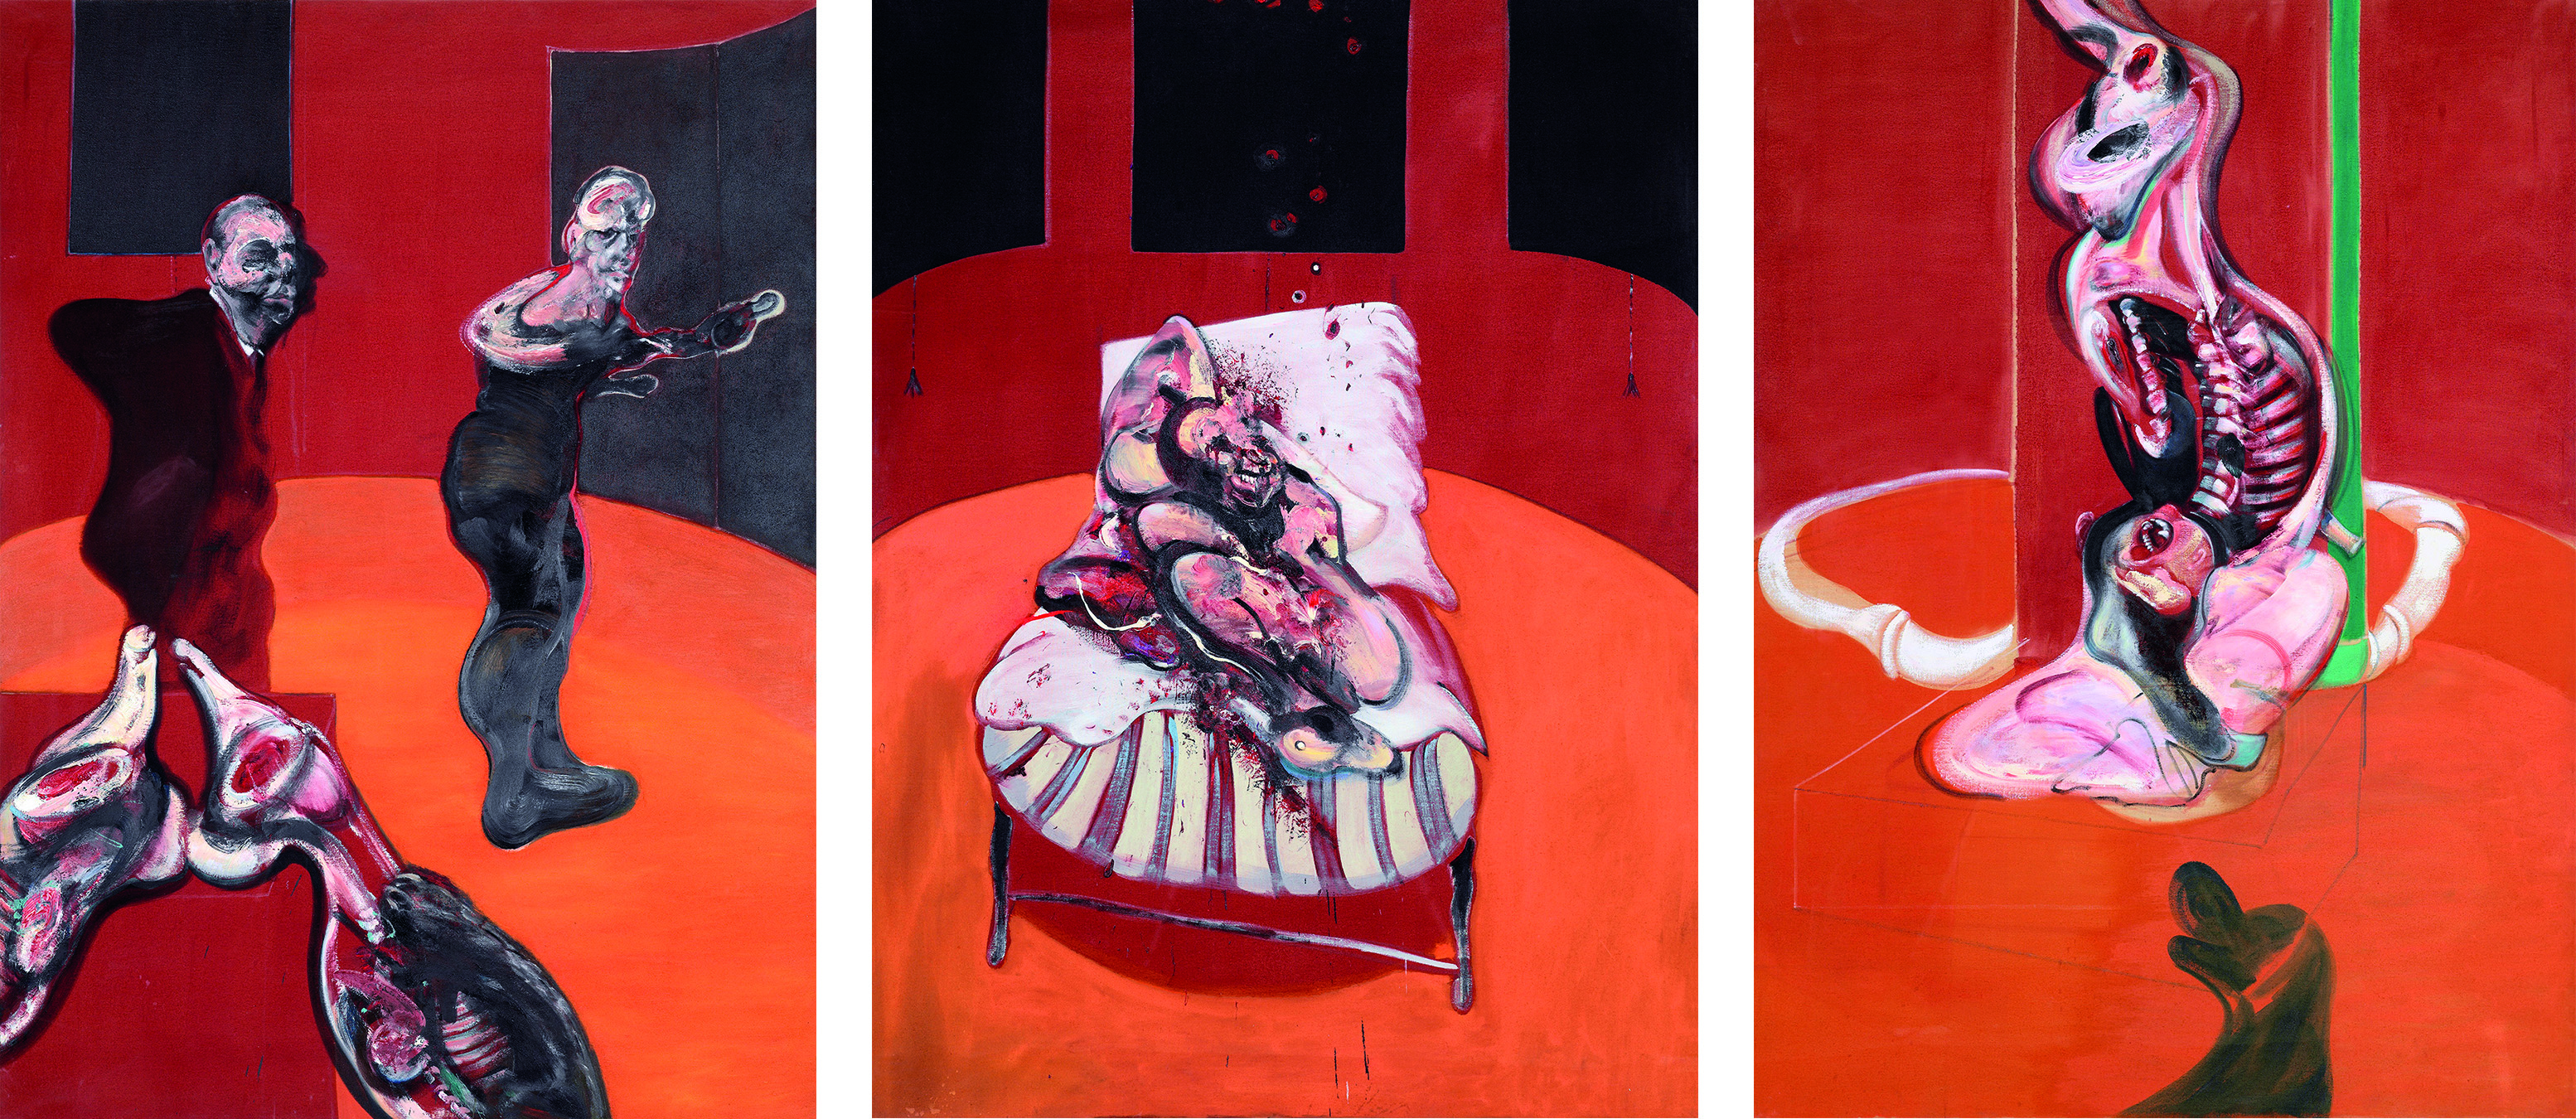 Francis Bacon, Three Studies for a Crucifixion, 1962. Oil on canvas. CR number 62-04. © The Estate of Francis Bacon / DACS London 2019. All rights reserved.